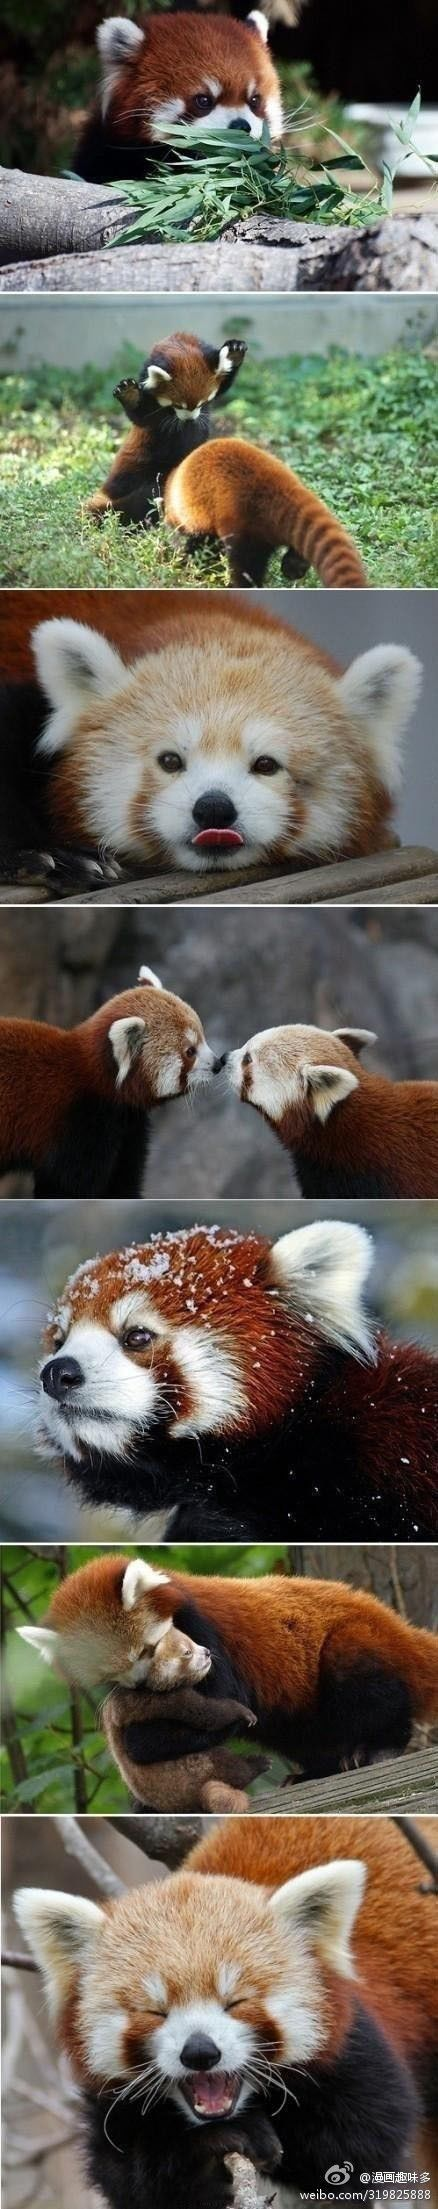 The Cutest Animal in the world...according to Houston zoo ;):